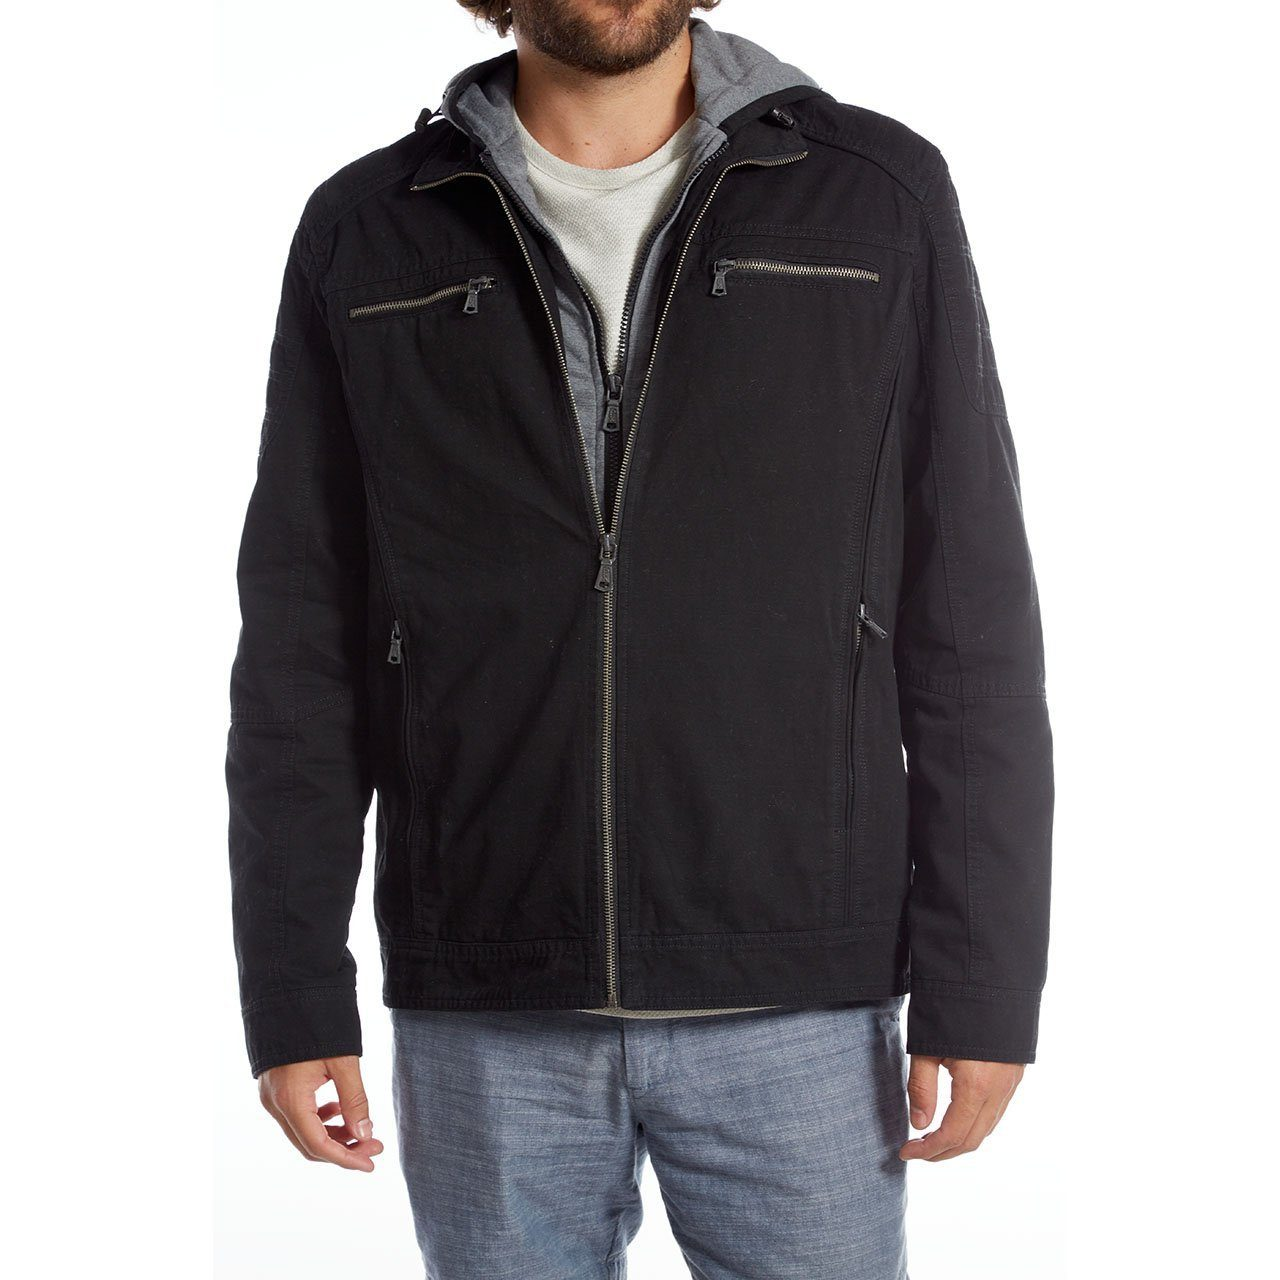 Cotton Jackets - Kendrick Cotton Jacket